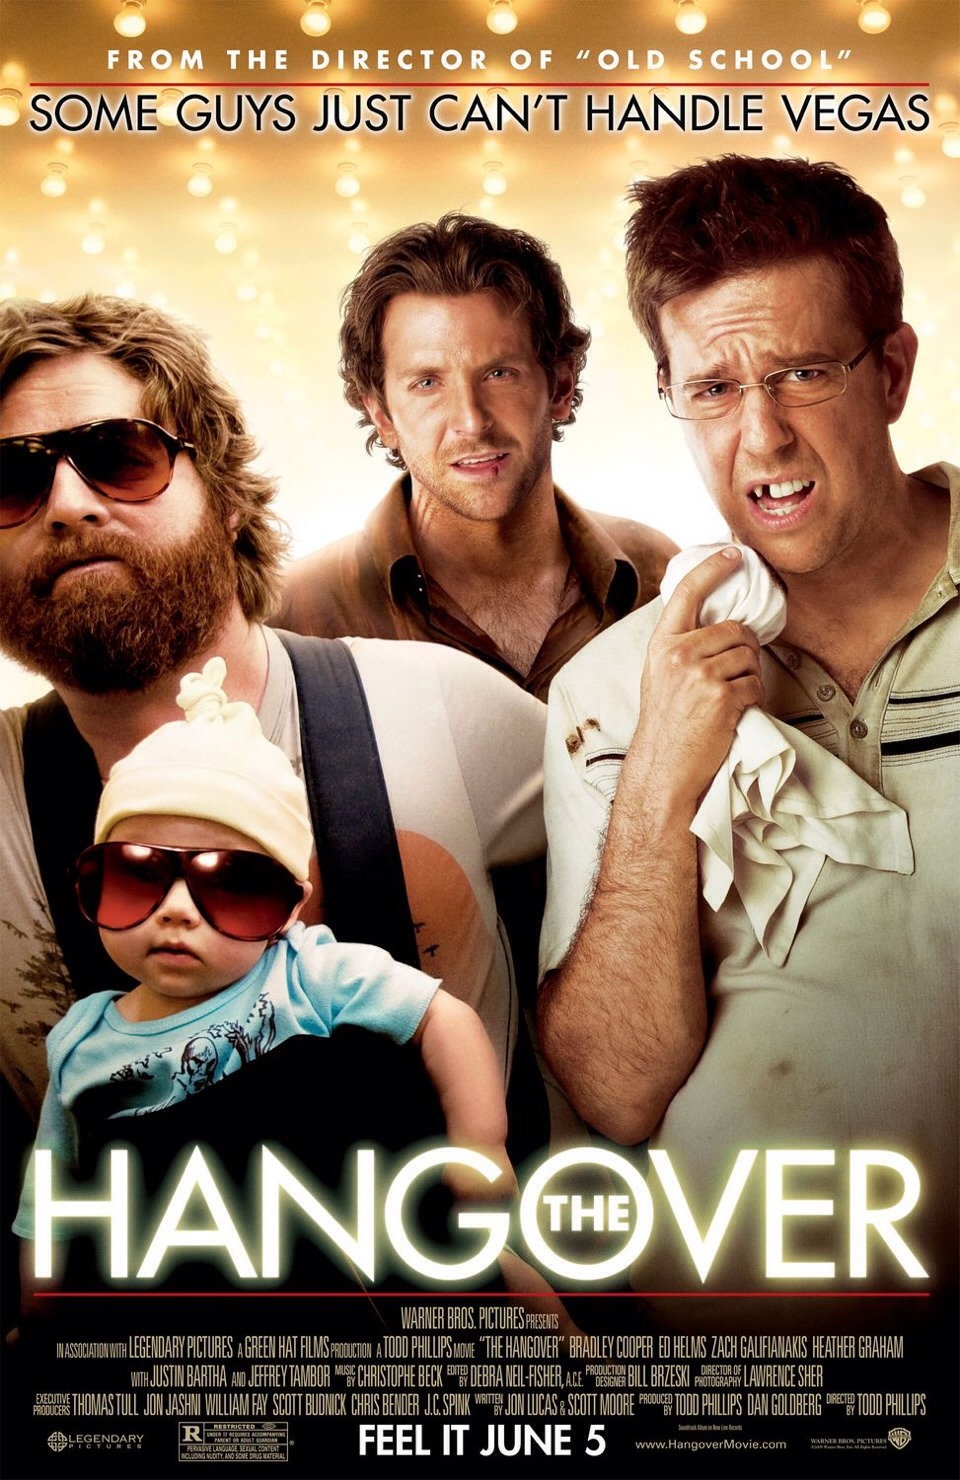 The hangover, 2009 American comedy film. Starring Bradley Cooper, Ed Helms, Zach Galifianakis, Justin Bartha and Ken Jeong. 😝 such a funny film!!! With have you laughing out loud 😂😂😝 its got that slight twist and causes suspense which makes you not want to stop watching it!!! 😝😝